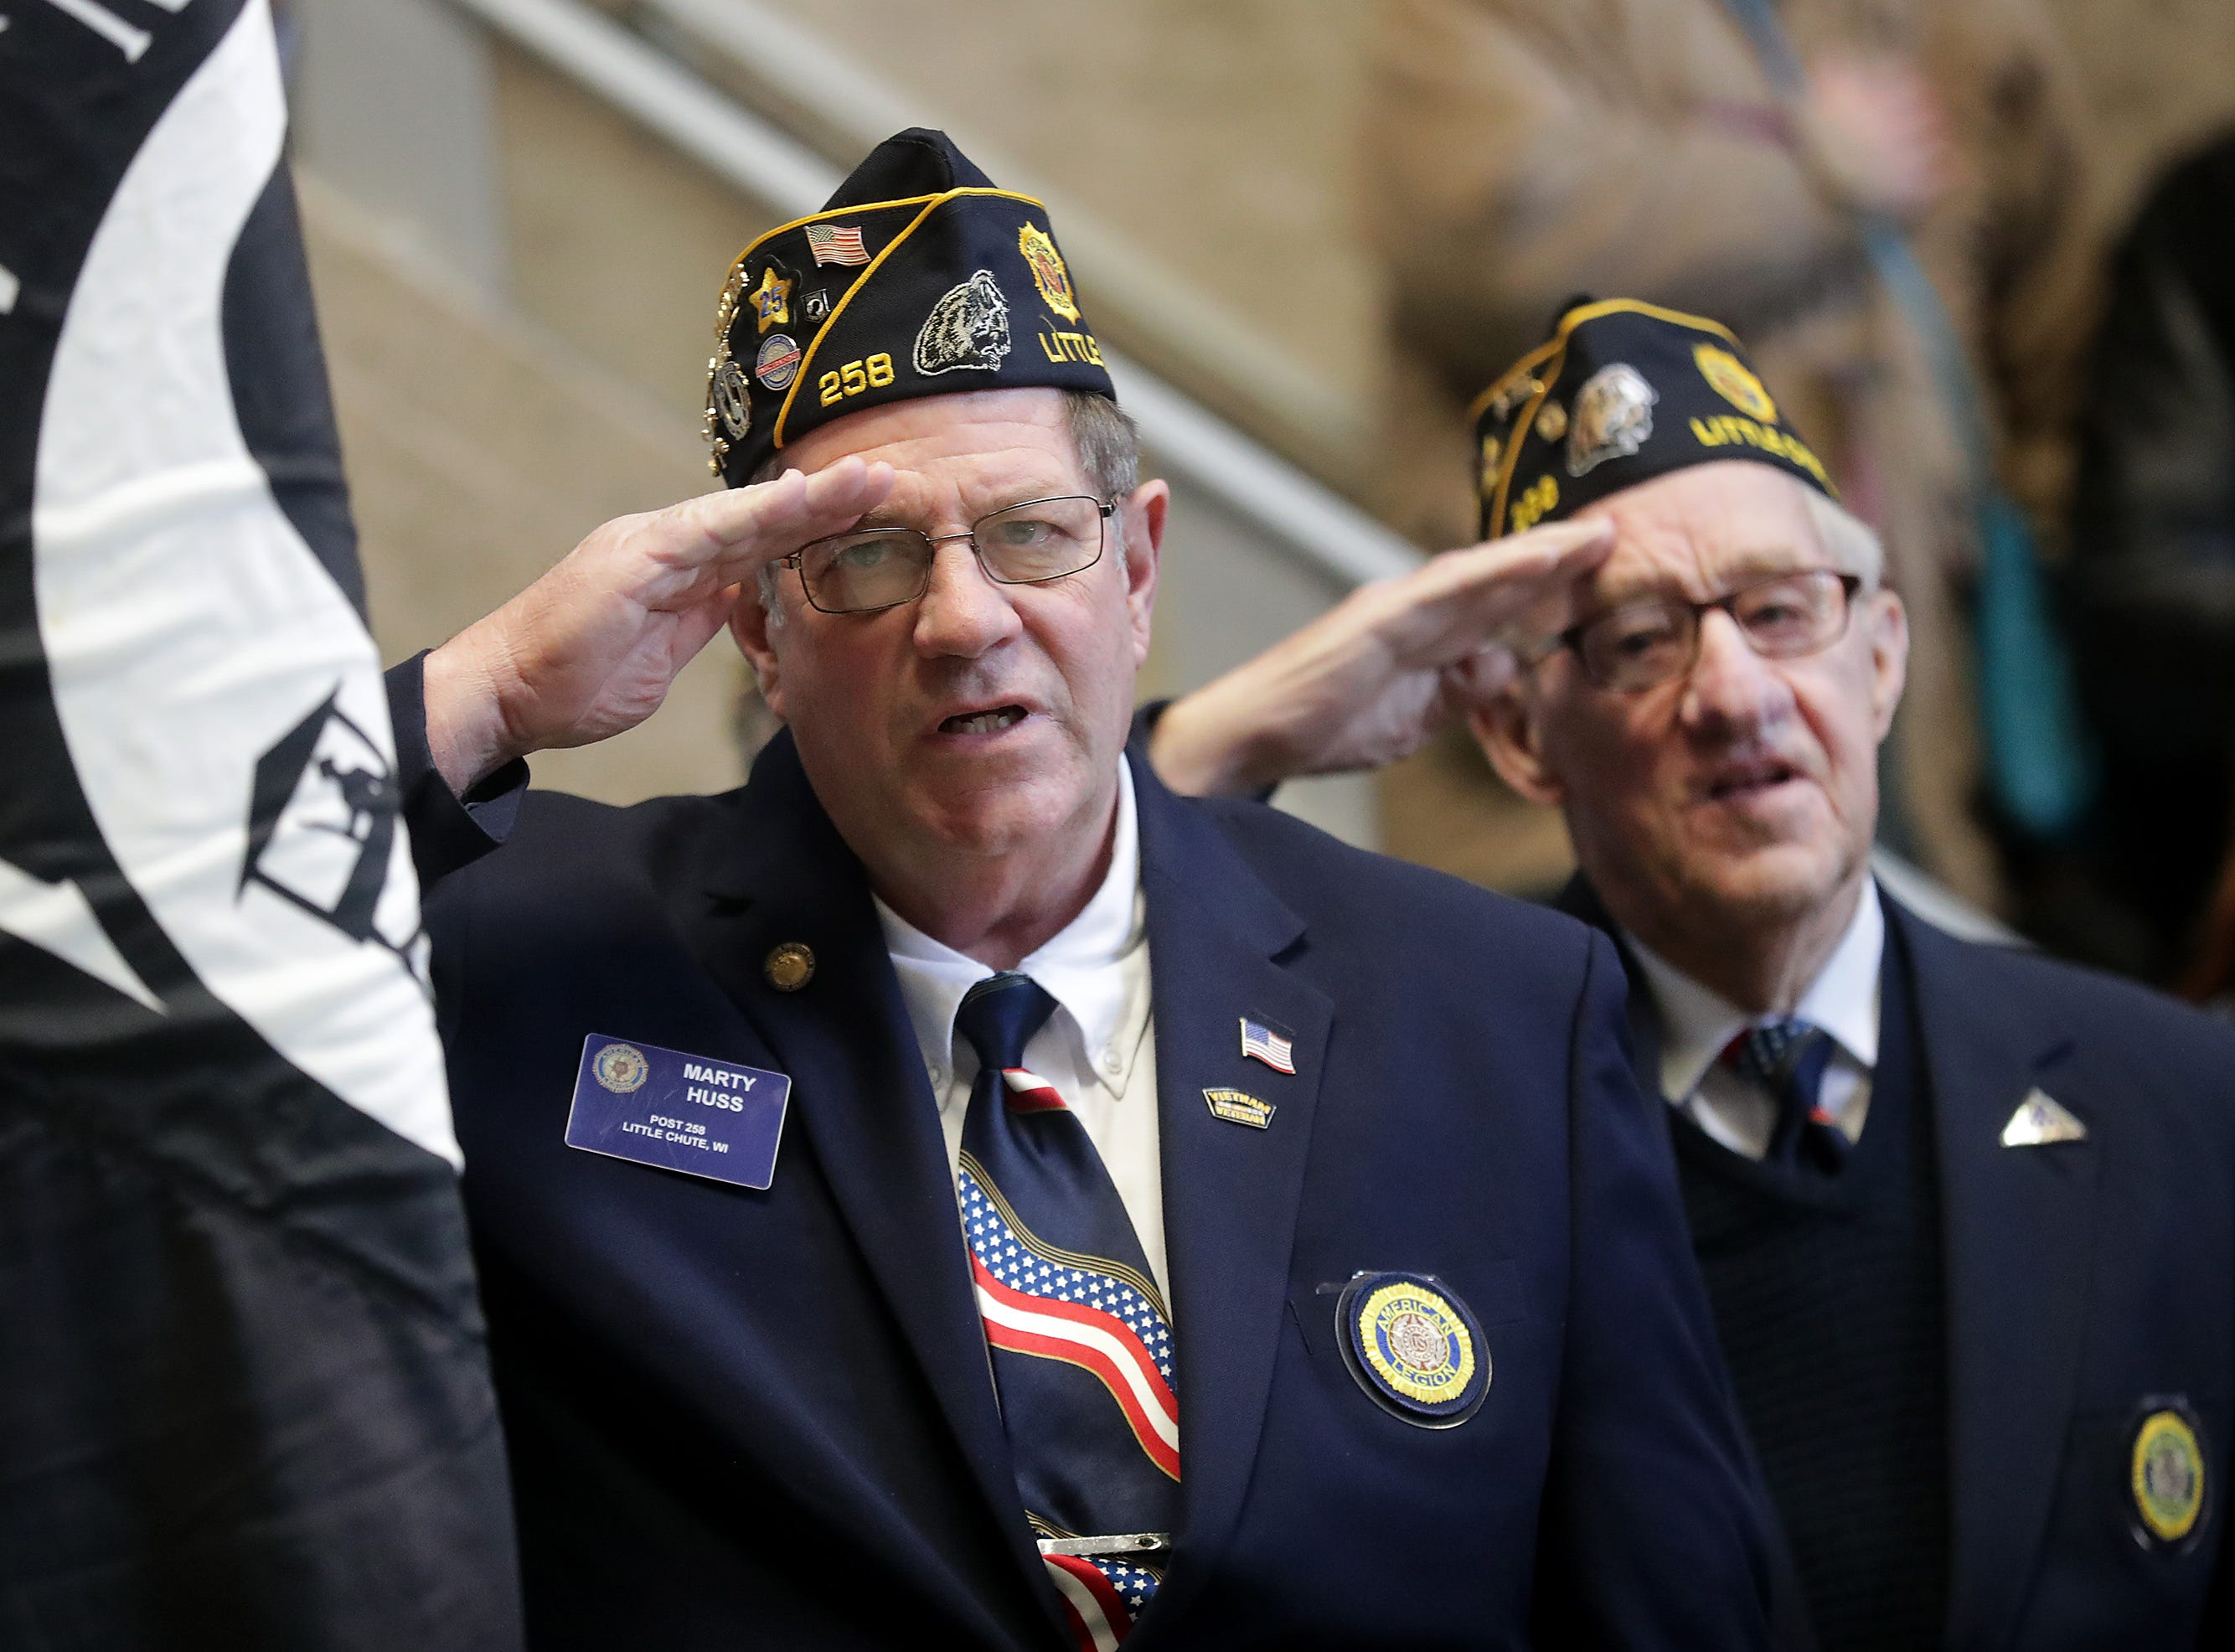 Marty Huss, Commander for American Legion Little Chute Post 258, and Leroy Va Asten, Post 258, salute during the Outagamie County Veterans Day Service on Sunday, Nov. 11, 2018, in Appleton, Wis. The service, in part, commemorated the 100th anniversary of the end of WW I.